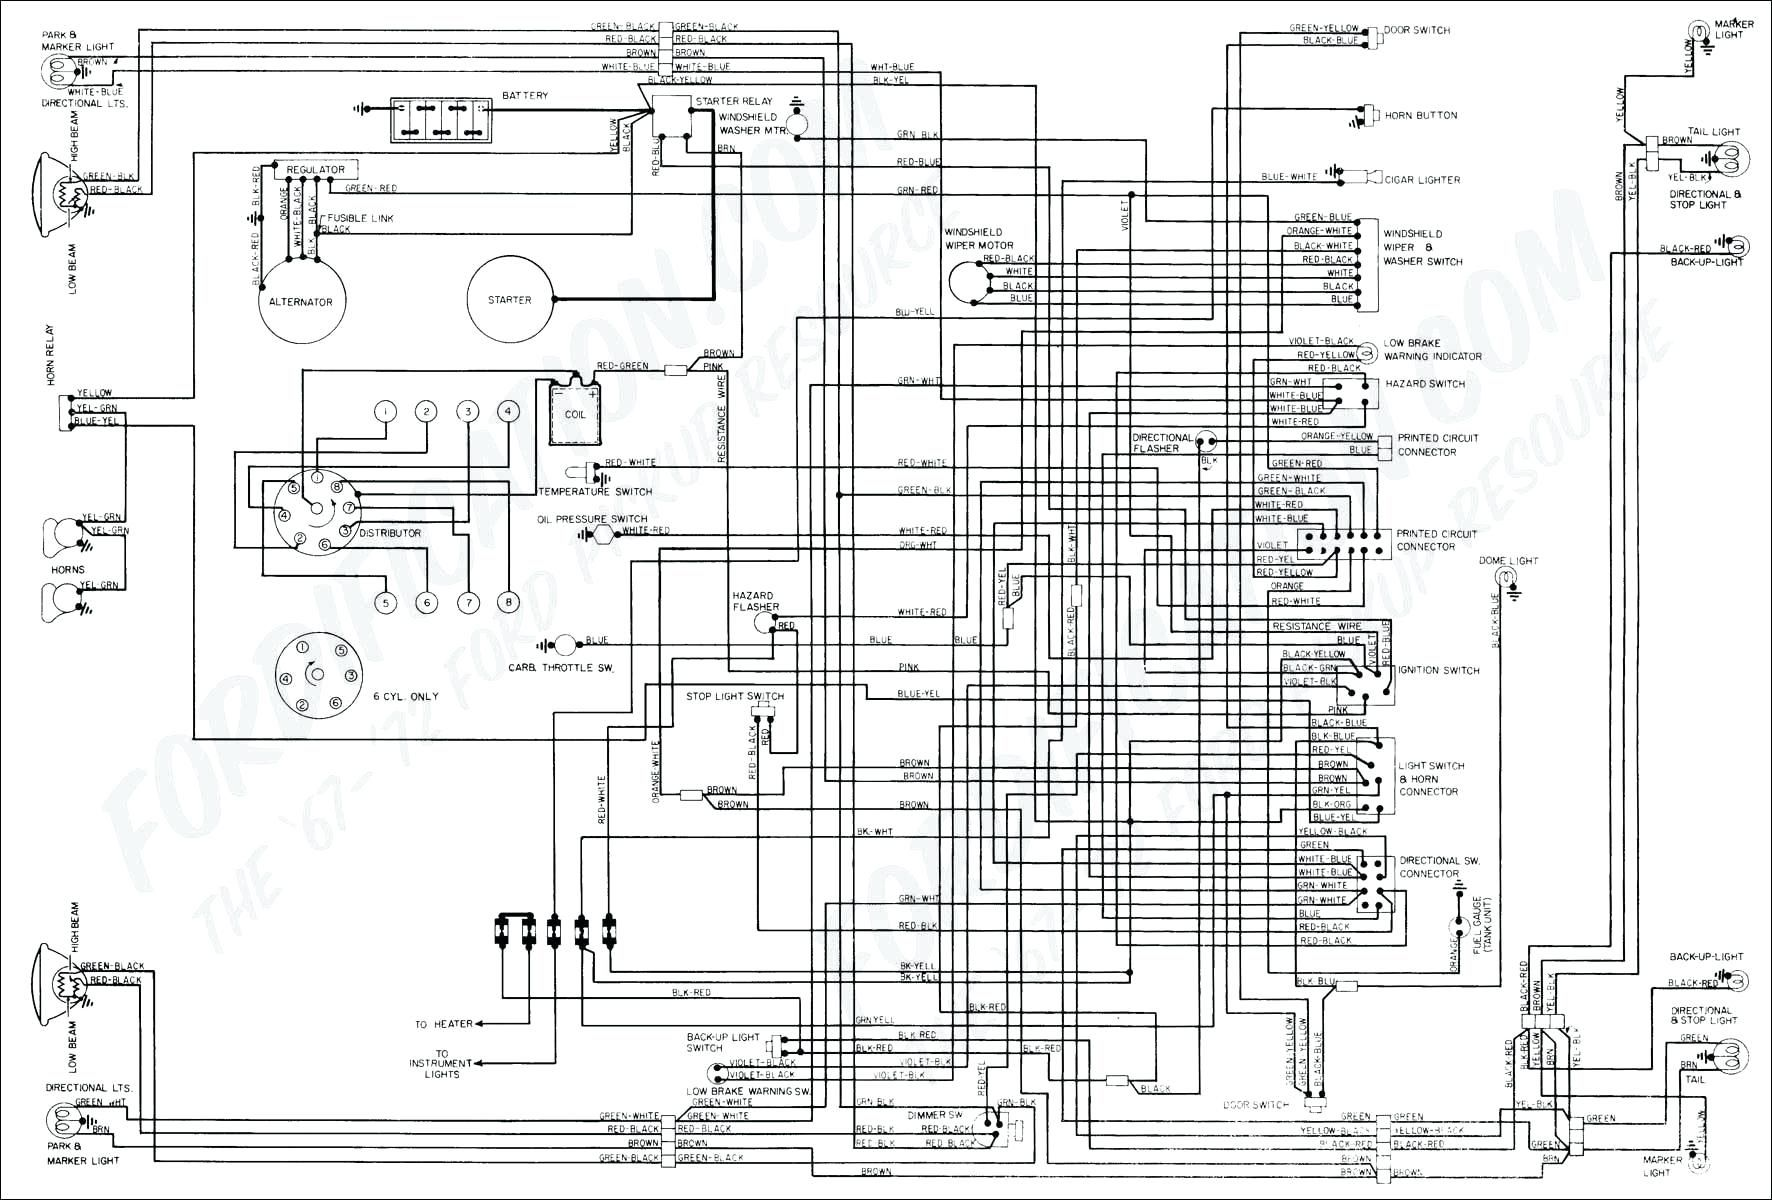 john deere 317 wiring wiring diagram meta john deere mower wiring diagram john deere 317 ignition diagram #2